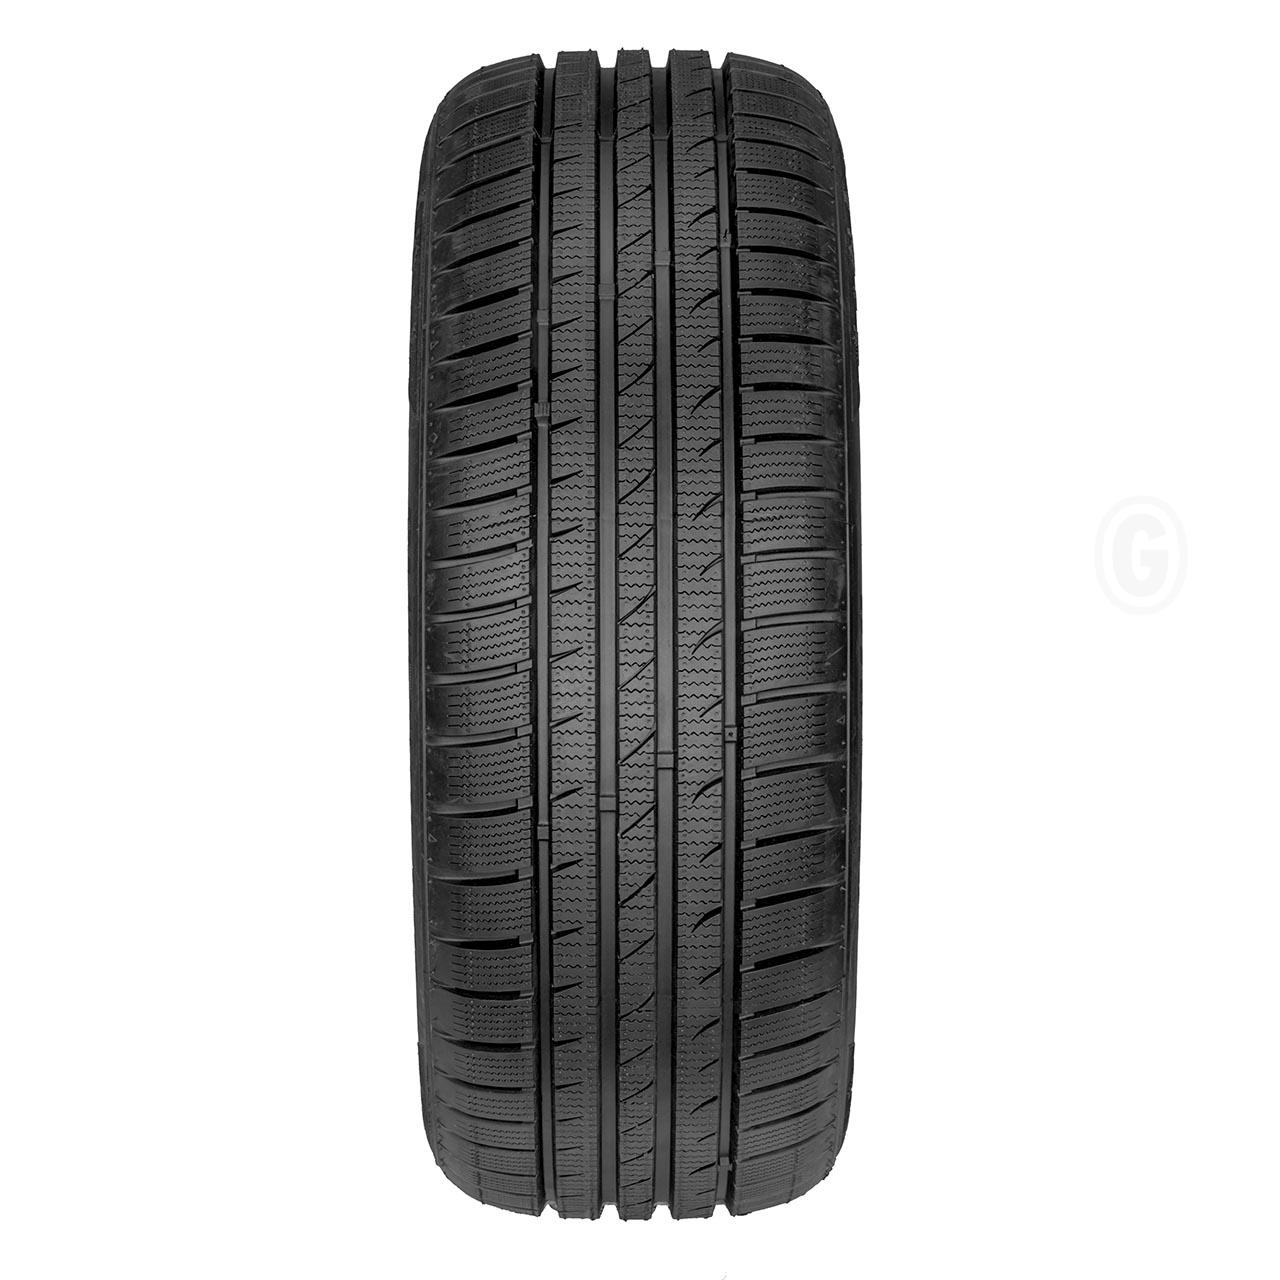 Fortuna Gowin UHP 225/45R17 94V XL